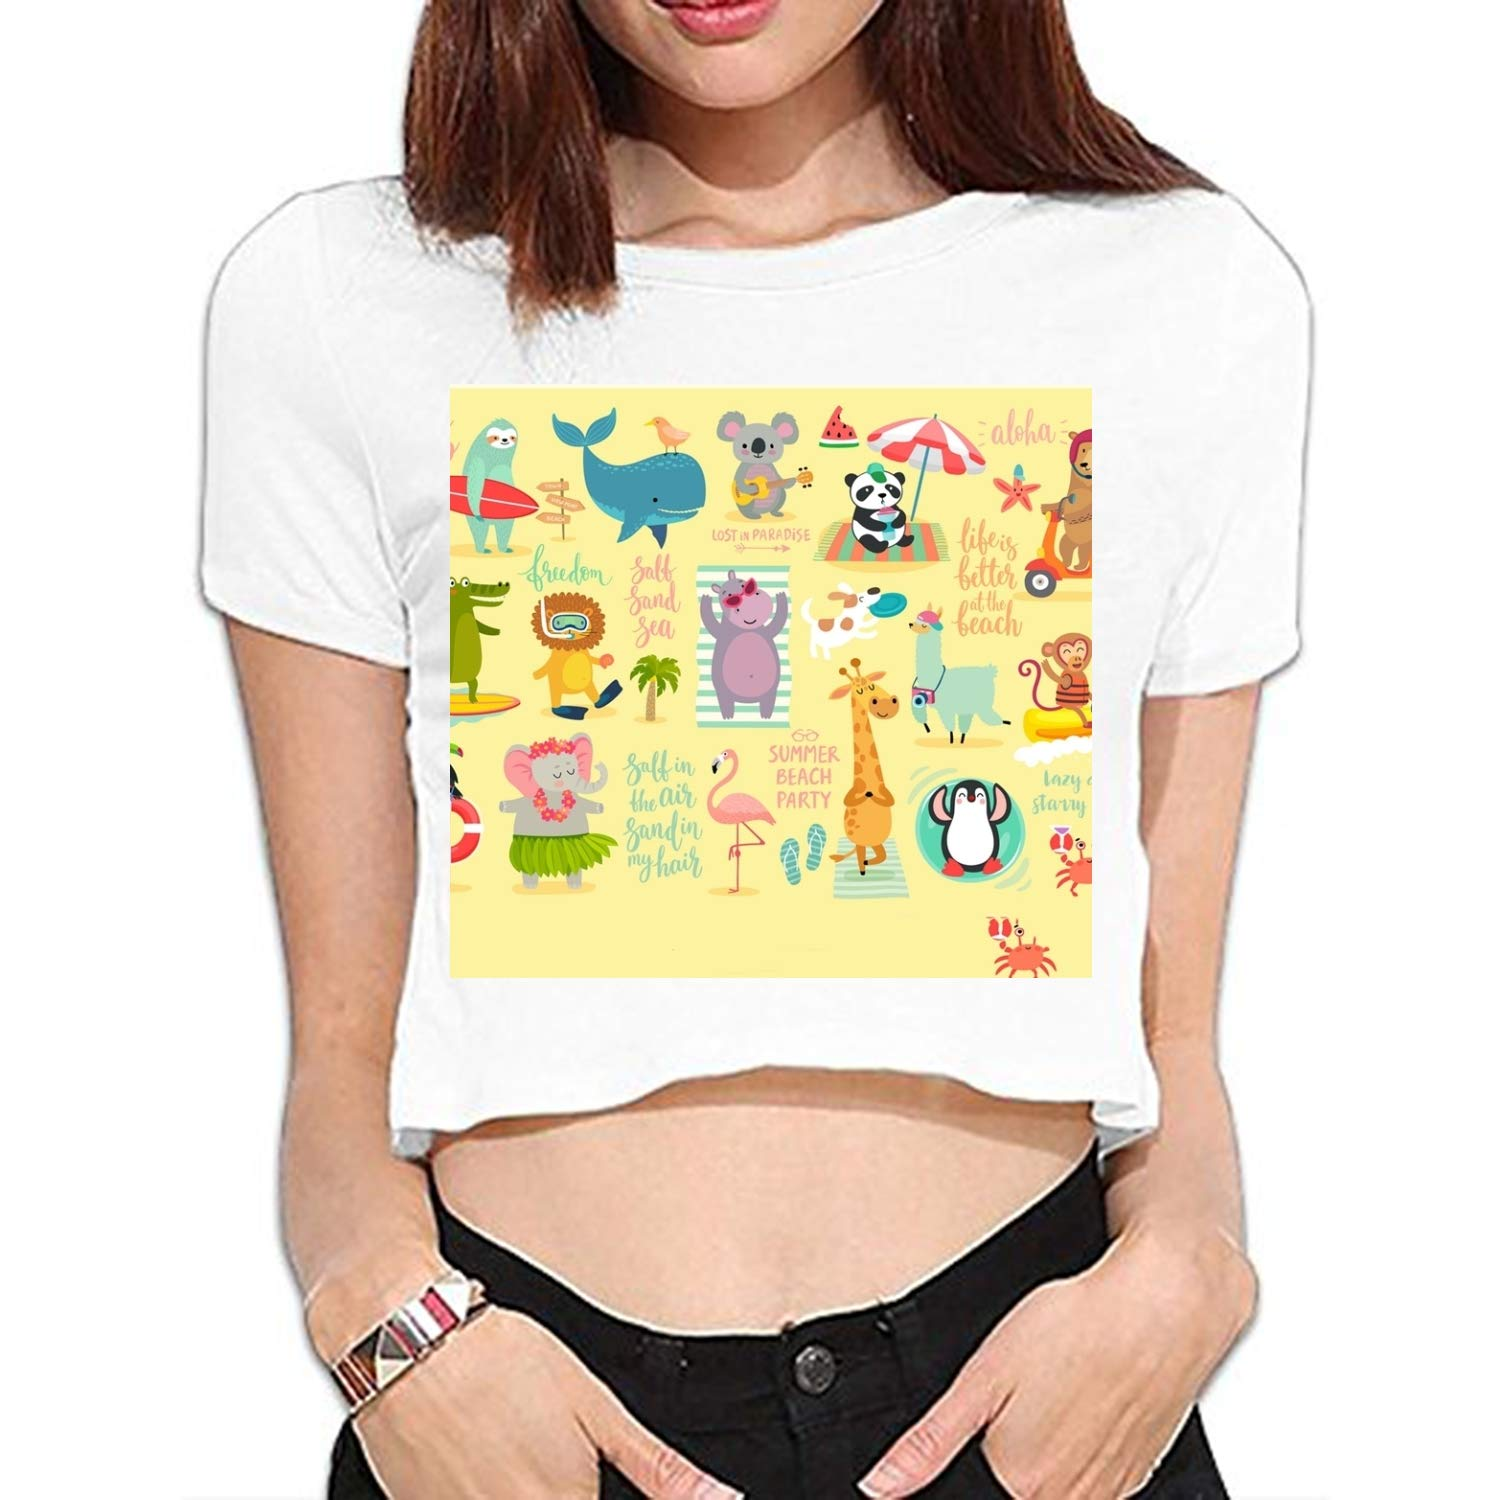 75bd6e5b1f05 Amazon.com  Teen Girl Funny T Shirts Women Cute Tops Beach Summer Style Graphic  Tee  Clothing